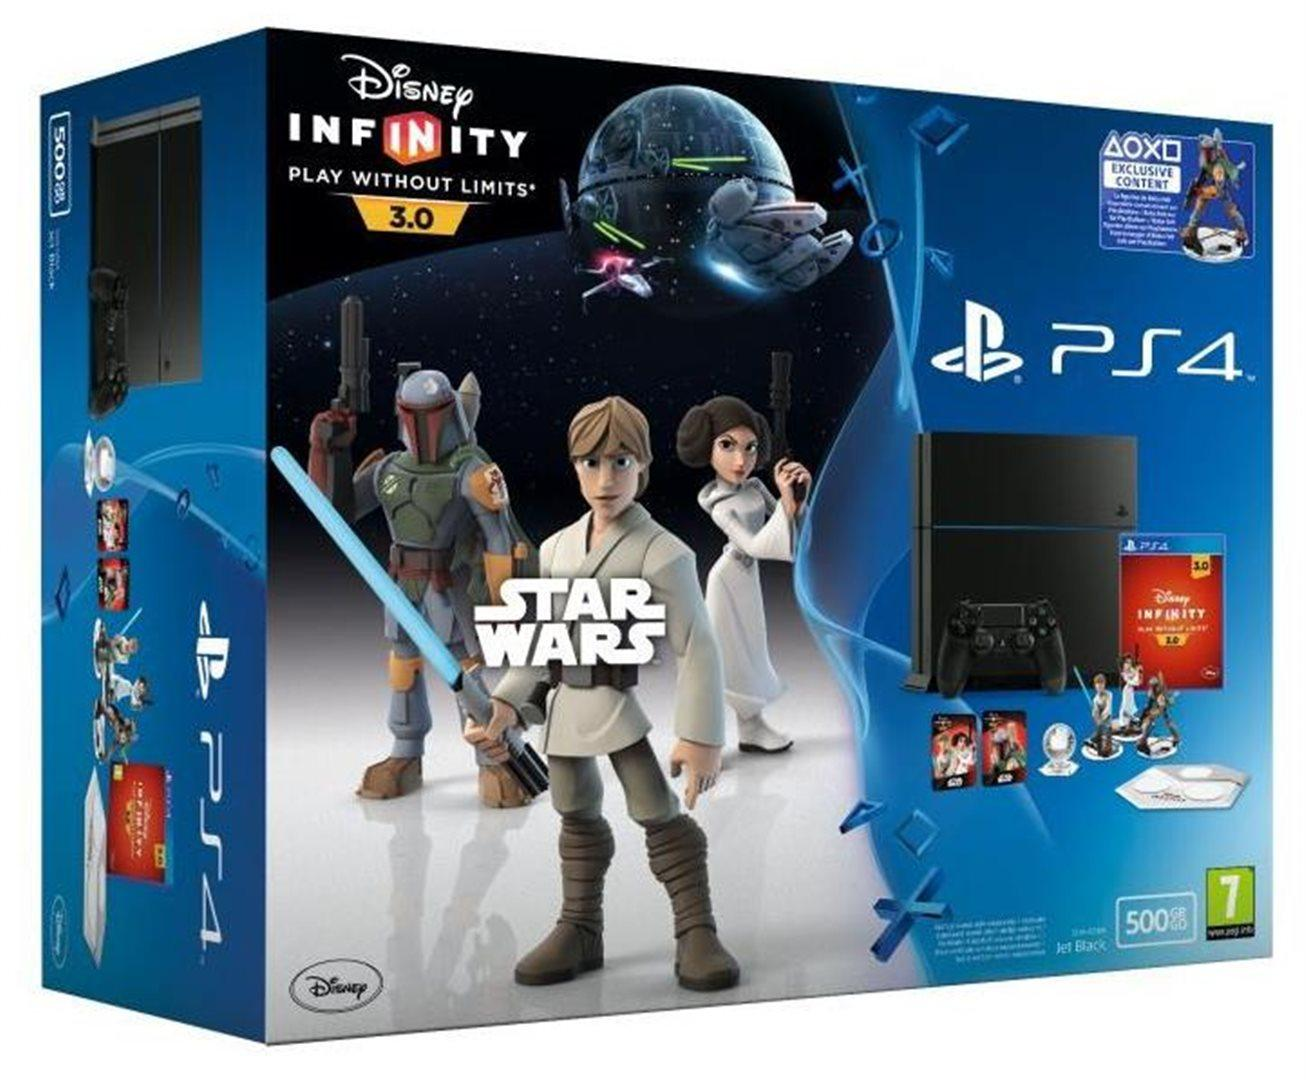 PS4 - Playstation 4 500GB + Disney Infinity 3.0